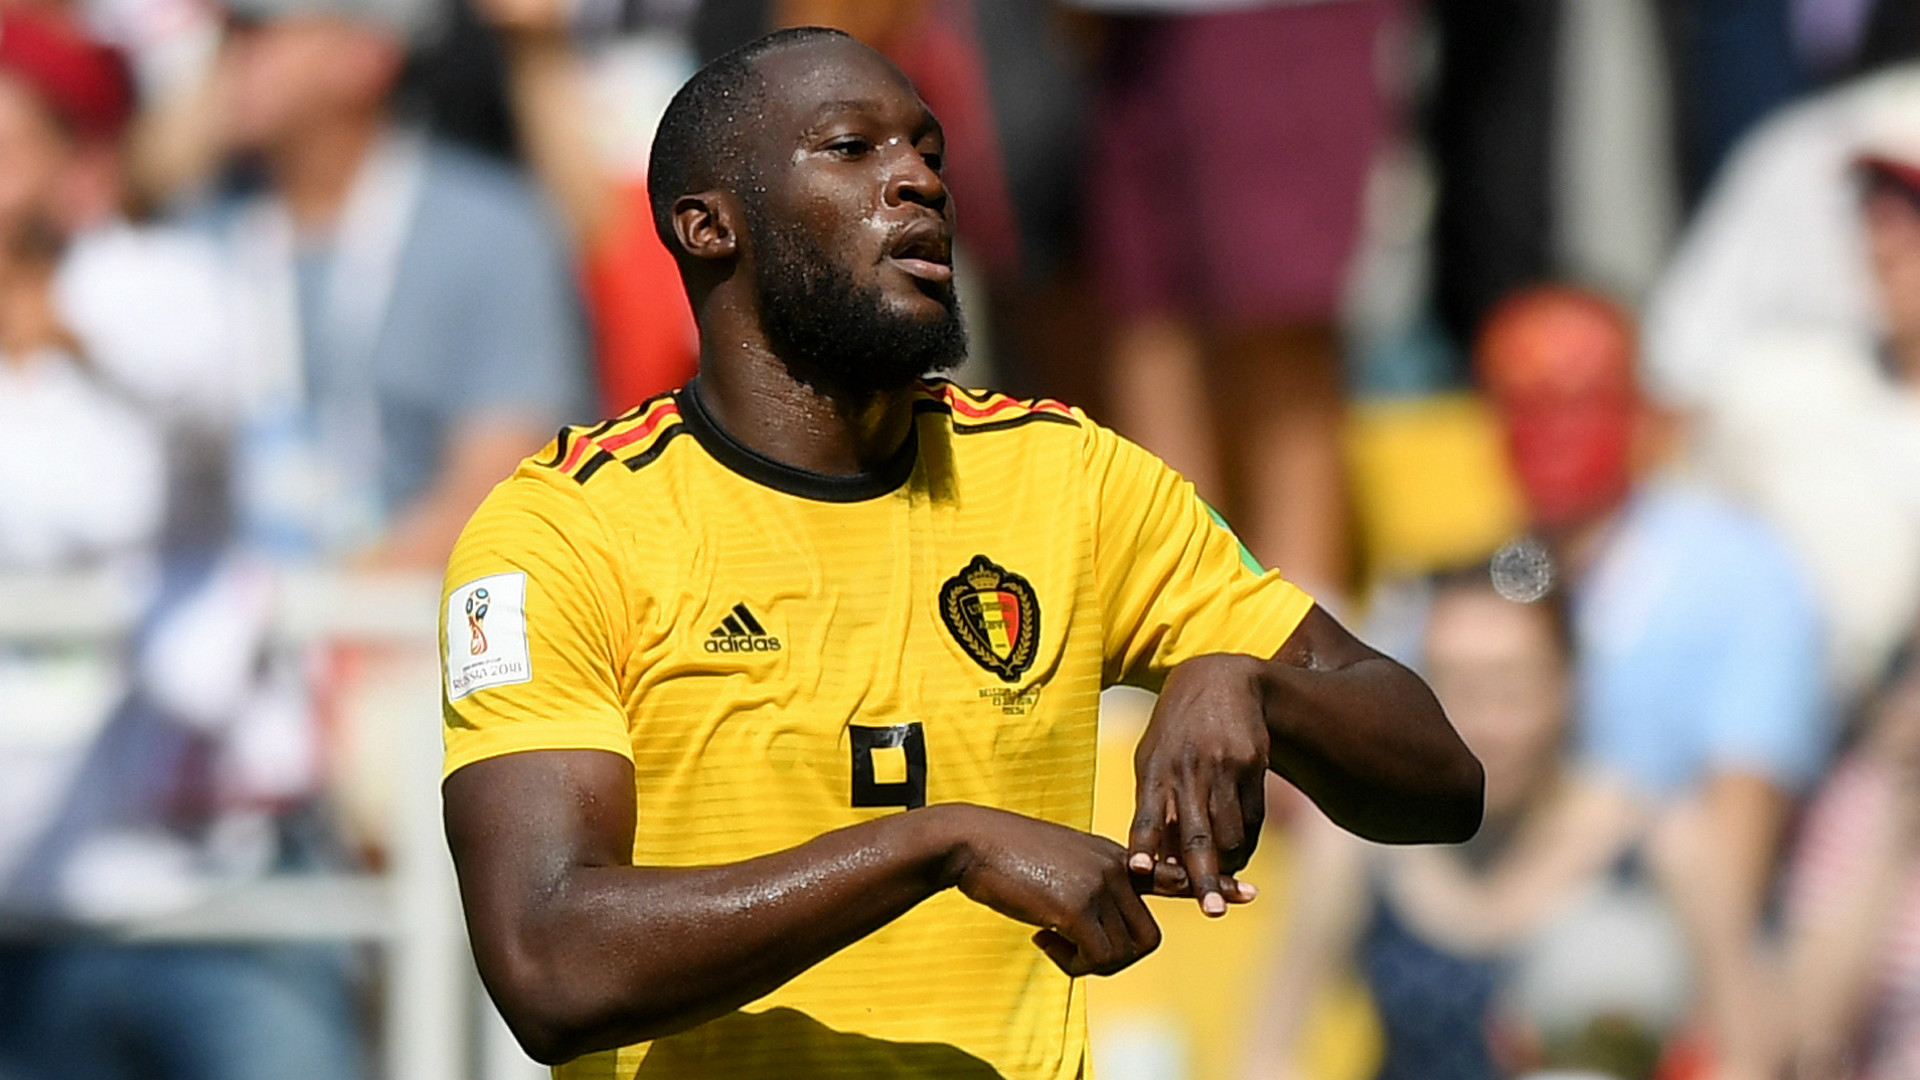 Lukaku gives Belgium 3-1 lead, levels Ronaldo